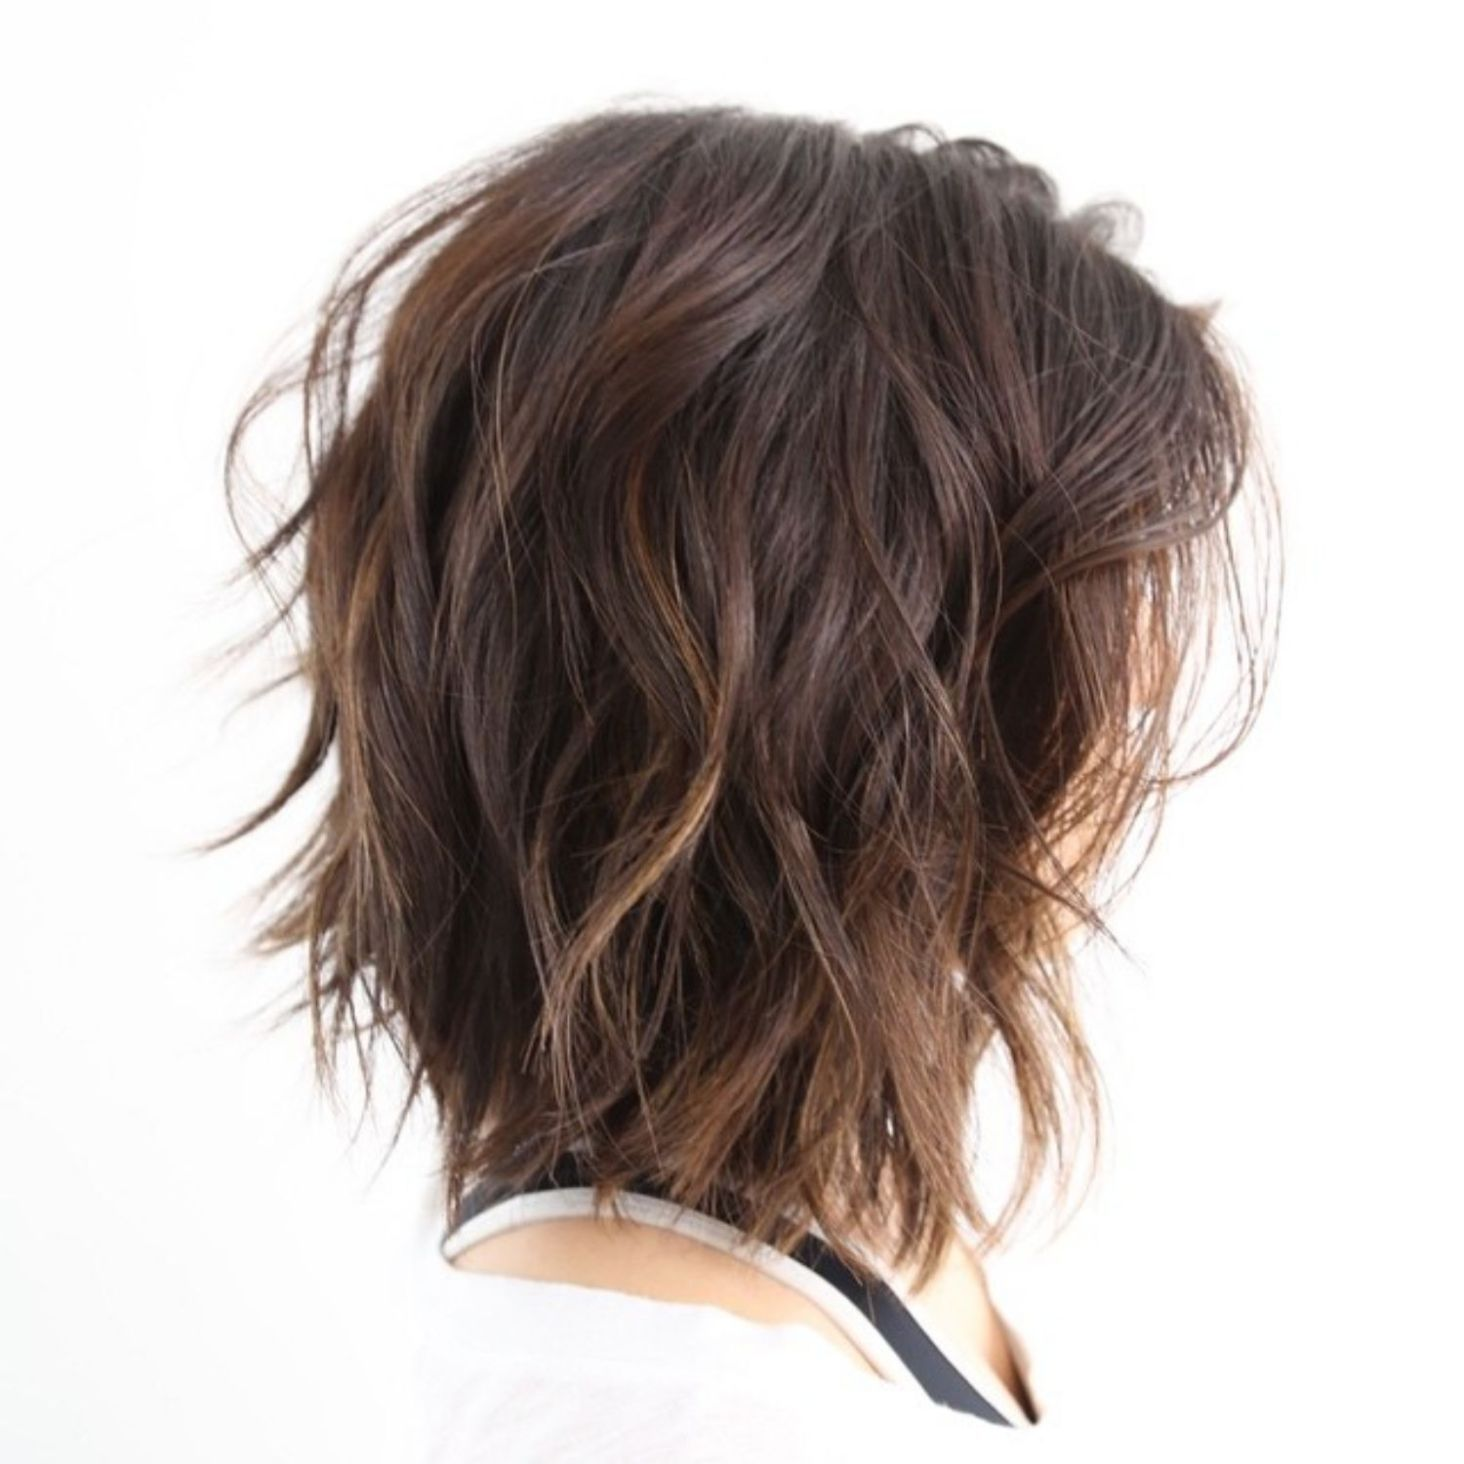 50 Best Variations of a Medium Shag Haircut for Your Distinctive ...